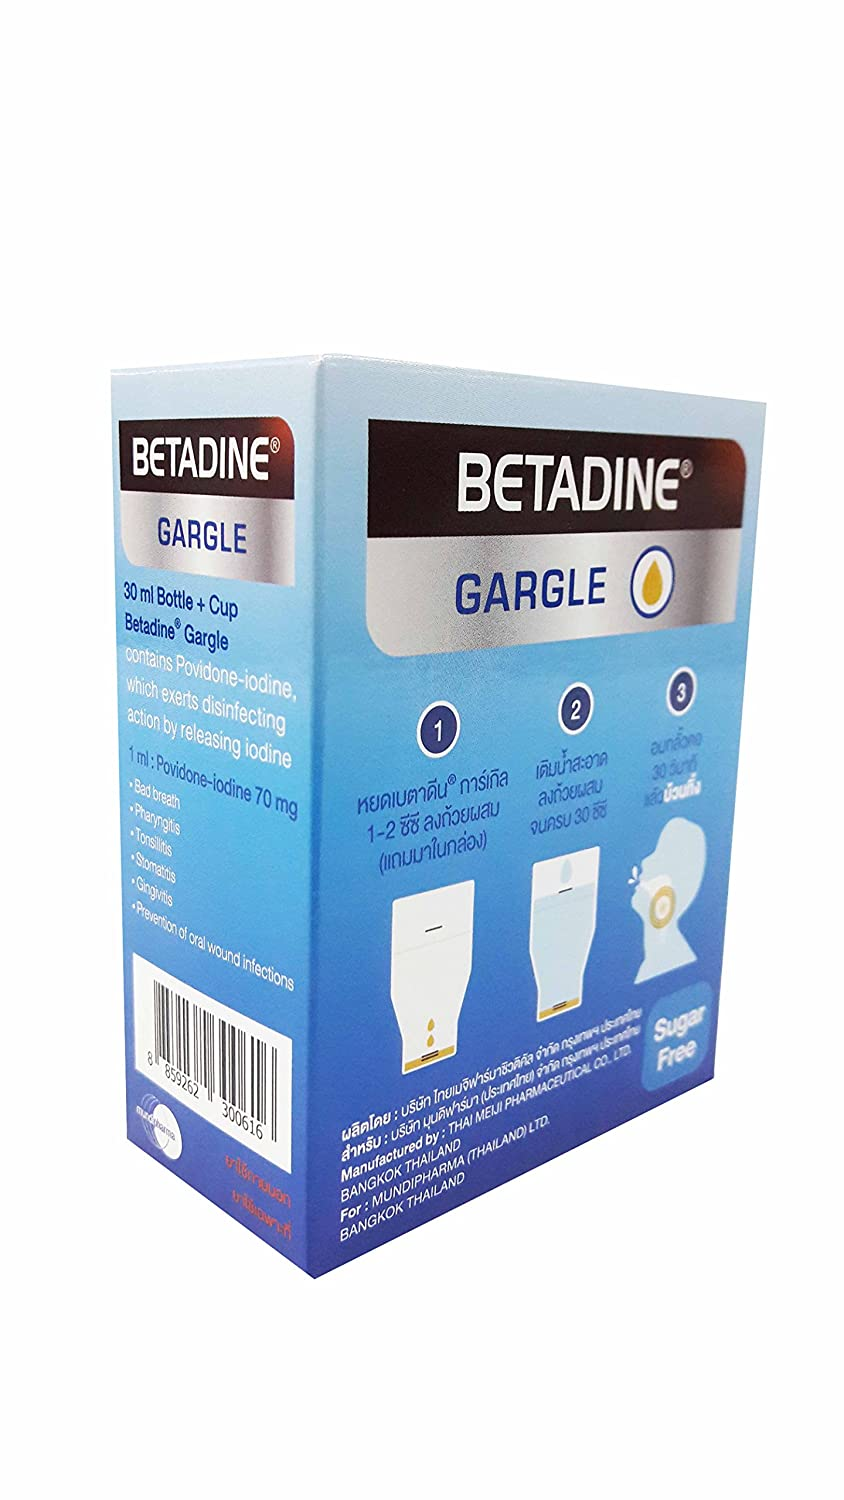 2 Packs of Betadine Gargle, Prevention of oral wound infections, Bad  breath, Pharyngitis, Tonsillitis,